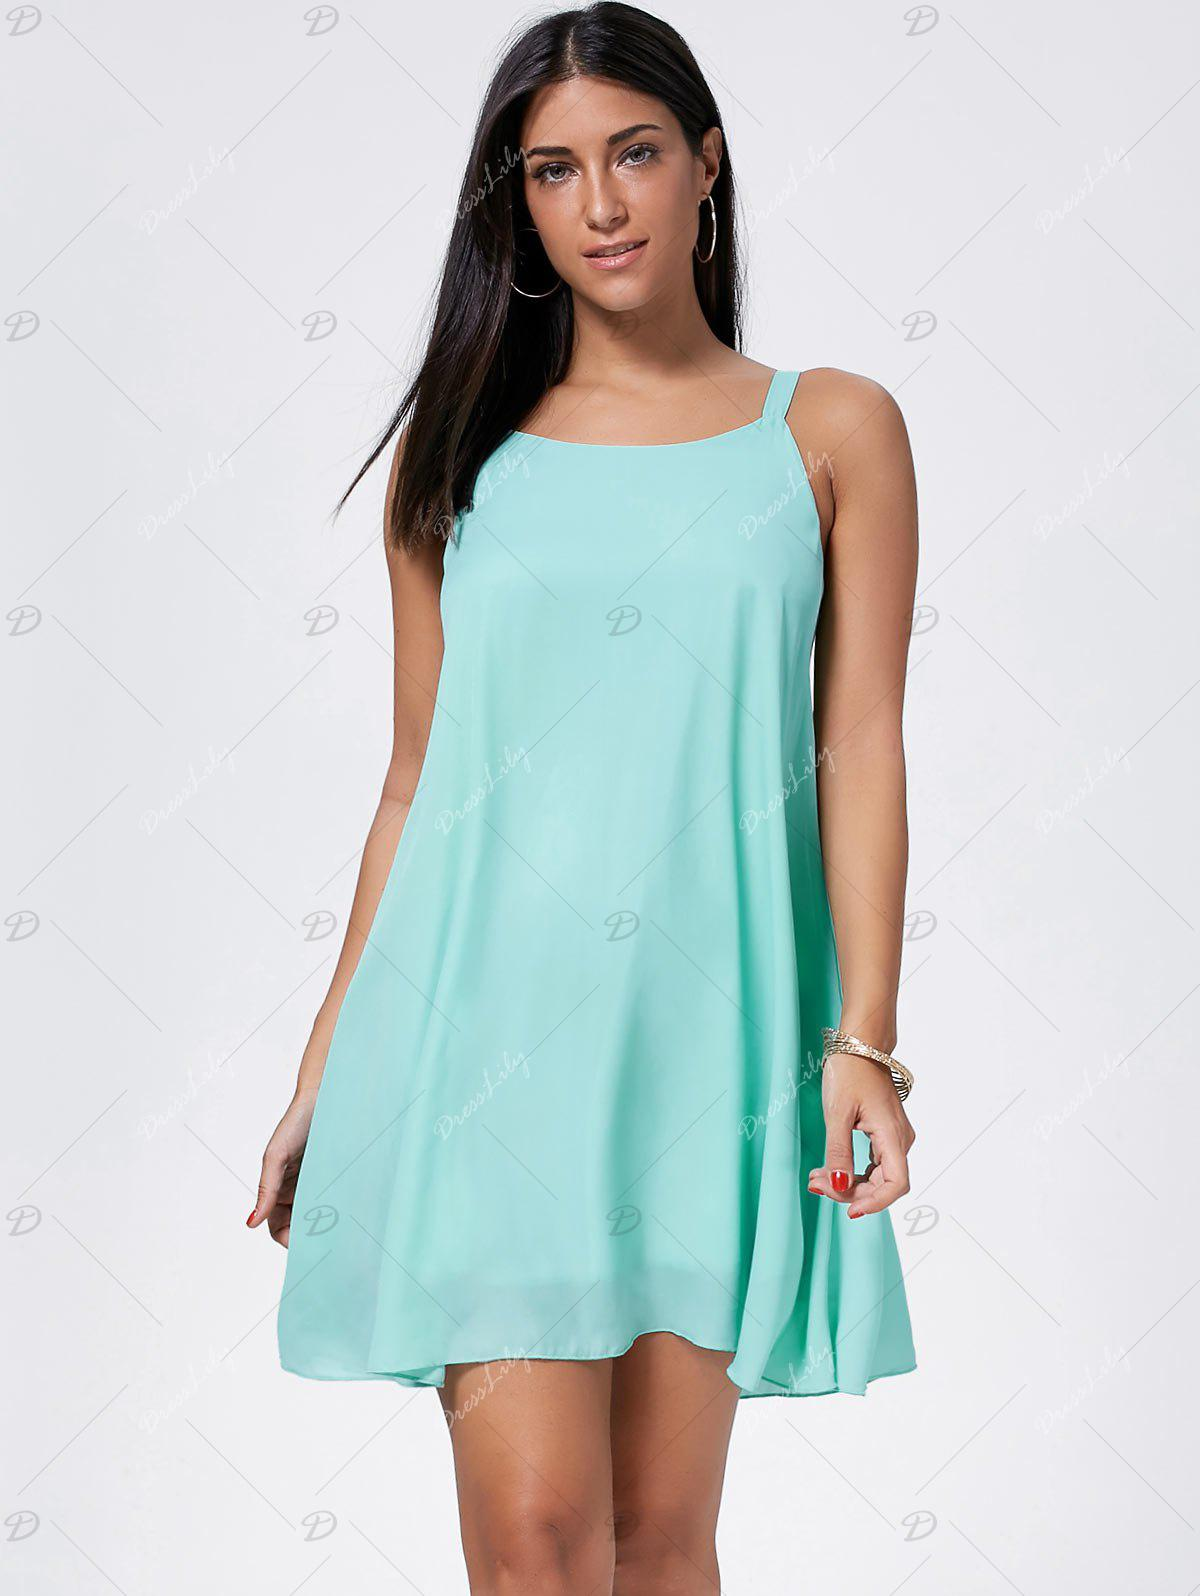 Bowknot Chiffon Mini Trapeze Dress - LIGHT GREEN XL